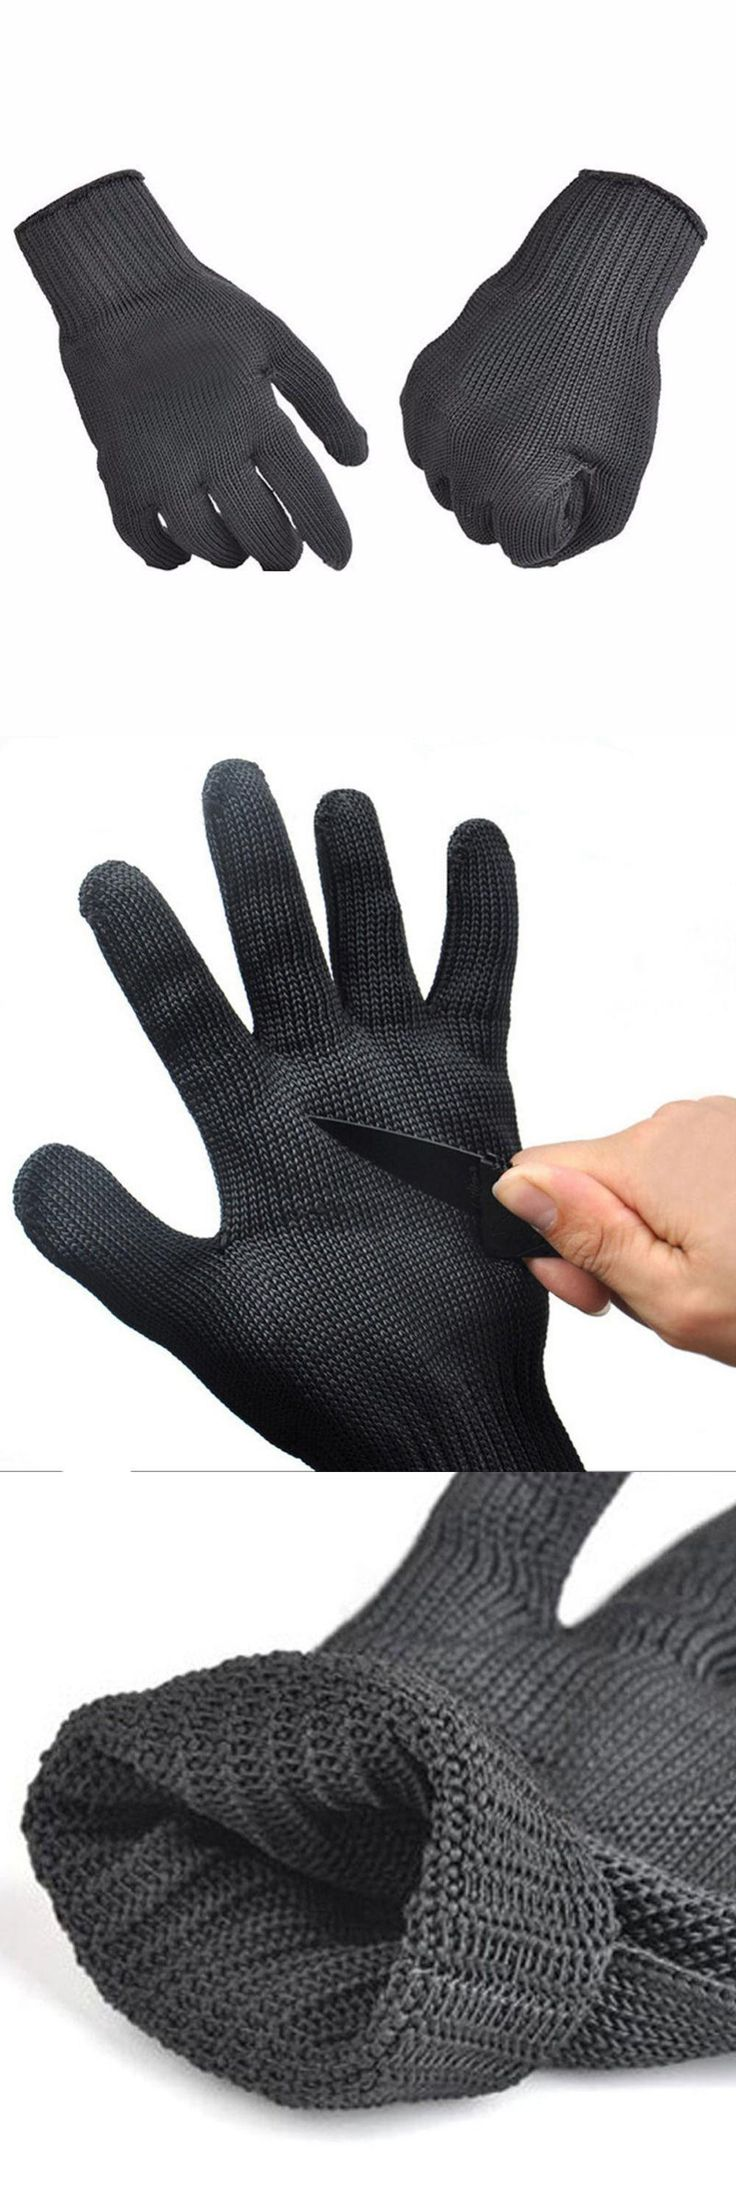 [Visit to Buy] 1 Pair Fishing Gloves Anti-cut Anti-slip Cut Resistant Protect Knife Proof Metal Mesh Butcher Breathable Glove #Advertisement